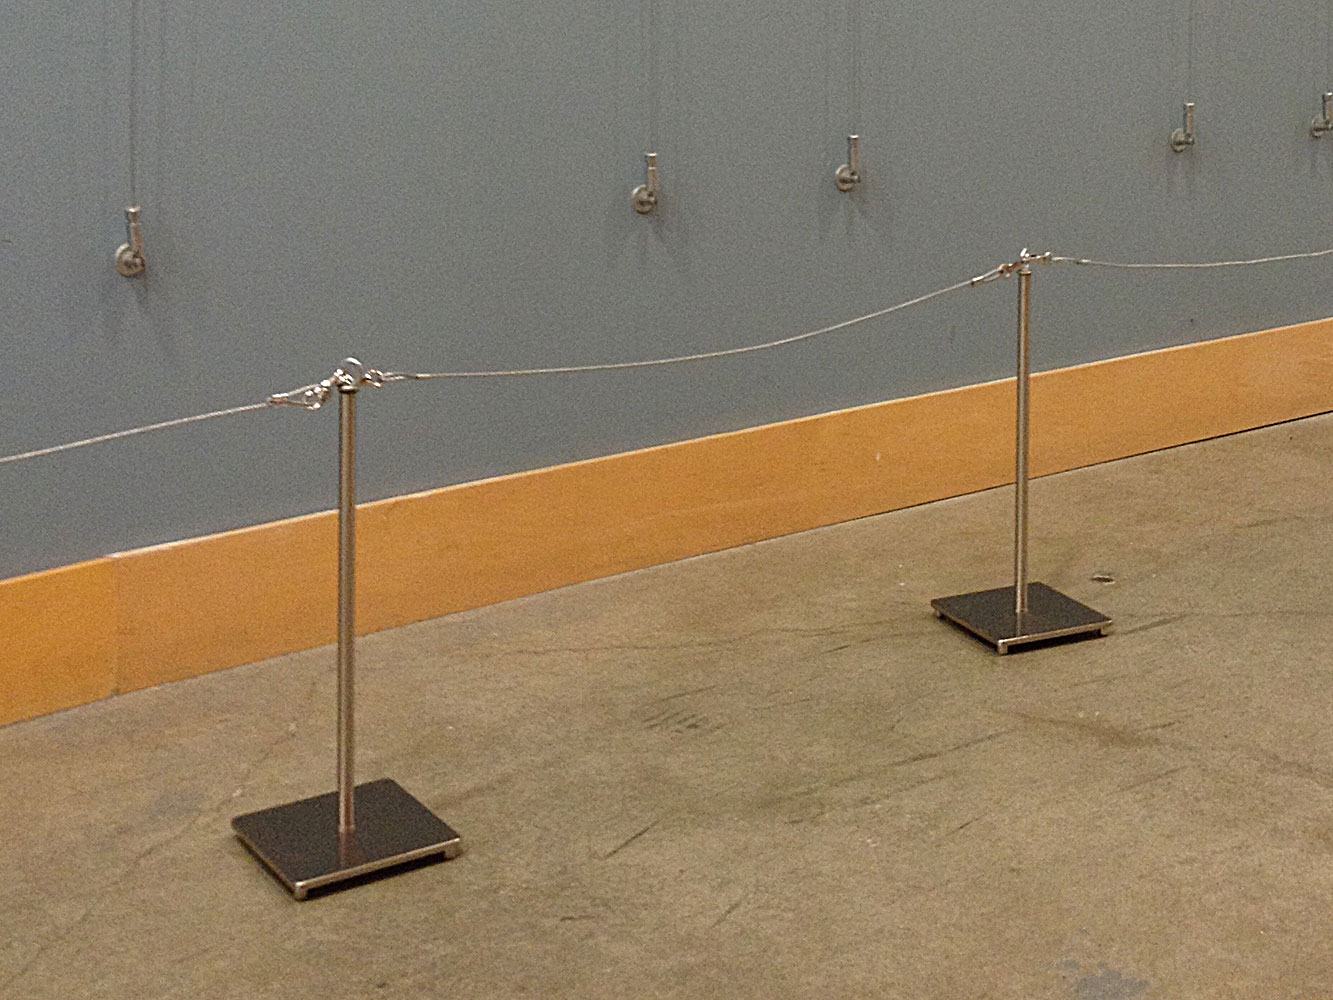 Sitra Art gallery stanchion with metal rope